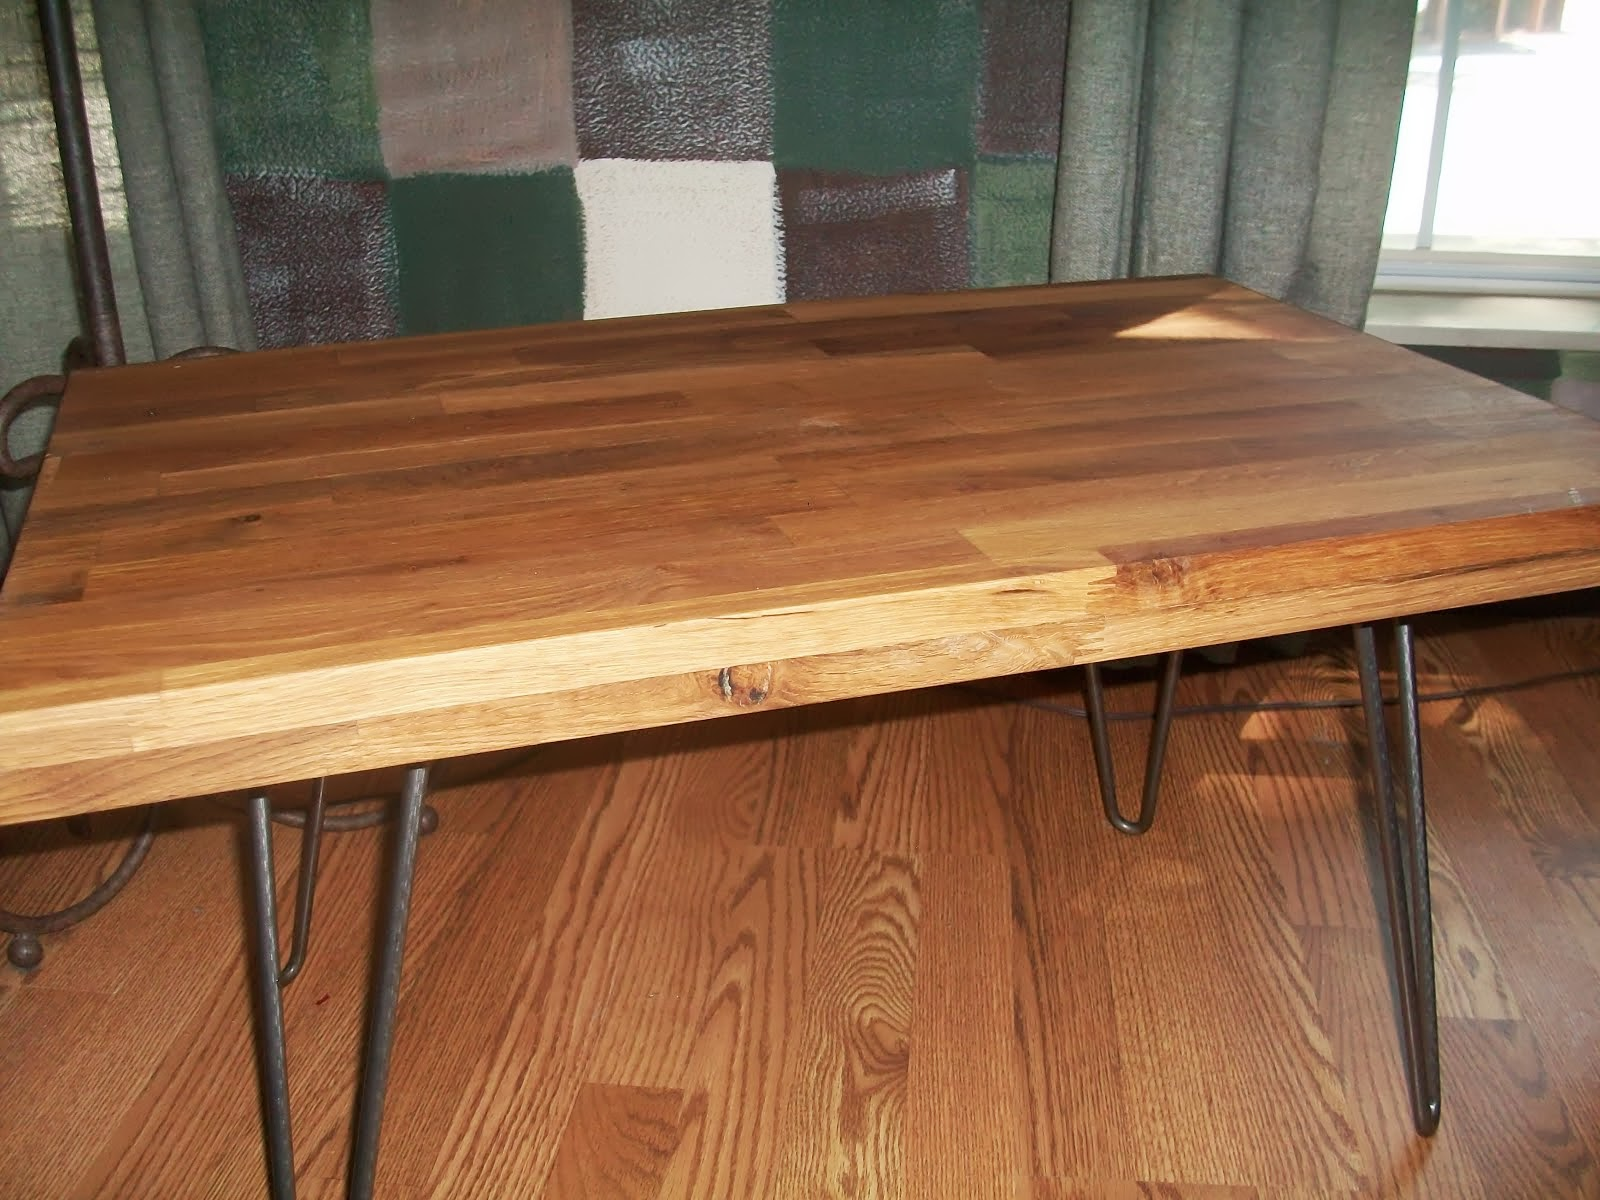 Butcher block coffee table and butcher block coffee table and end table ikea hackers